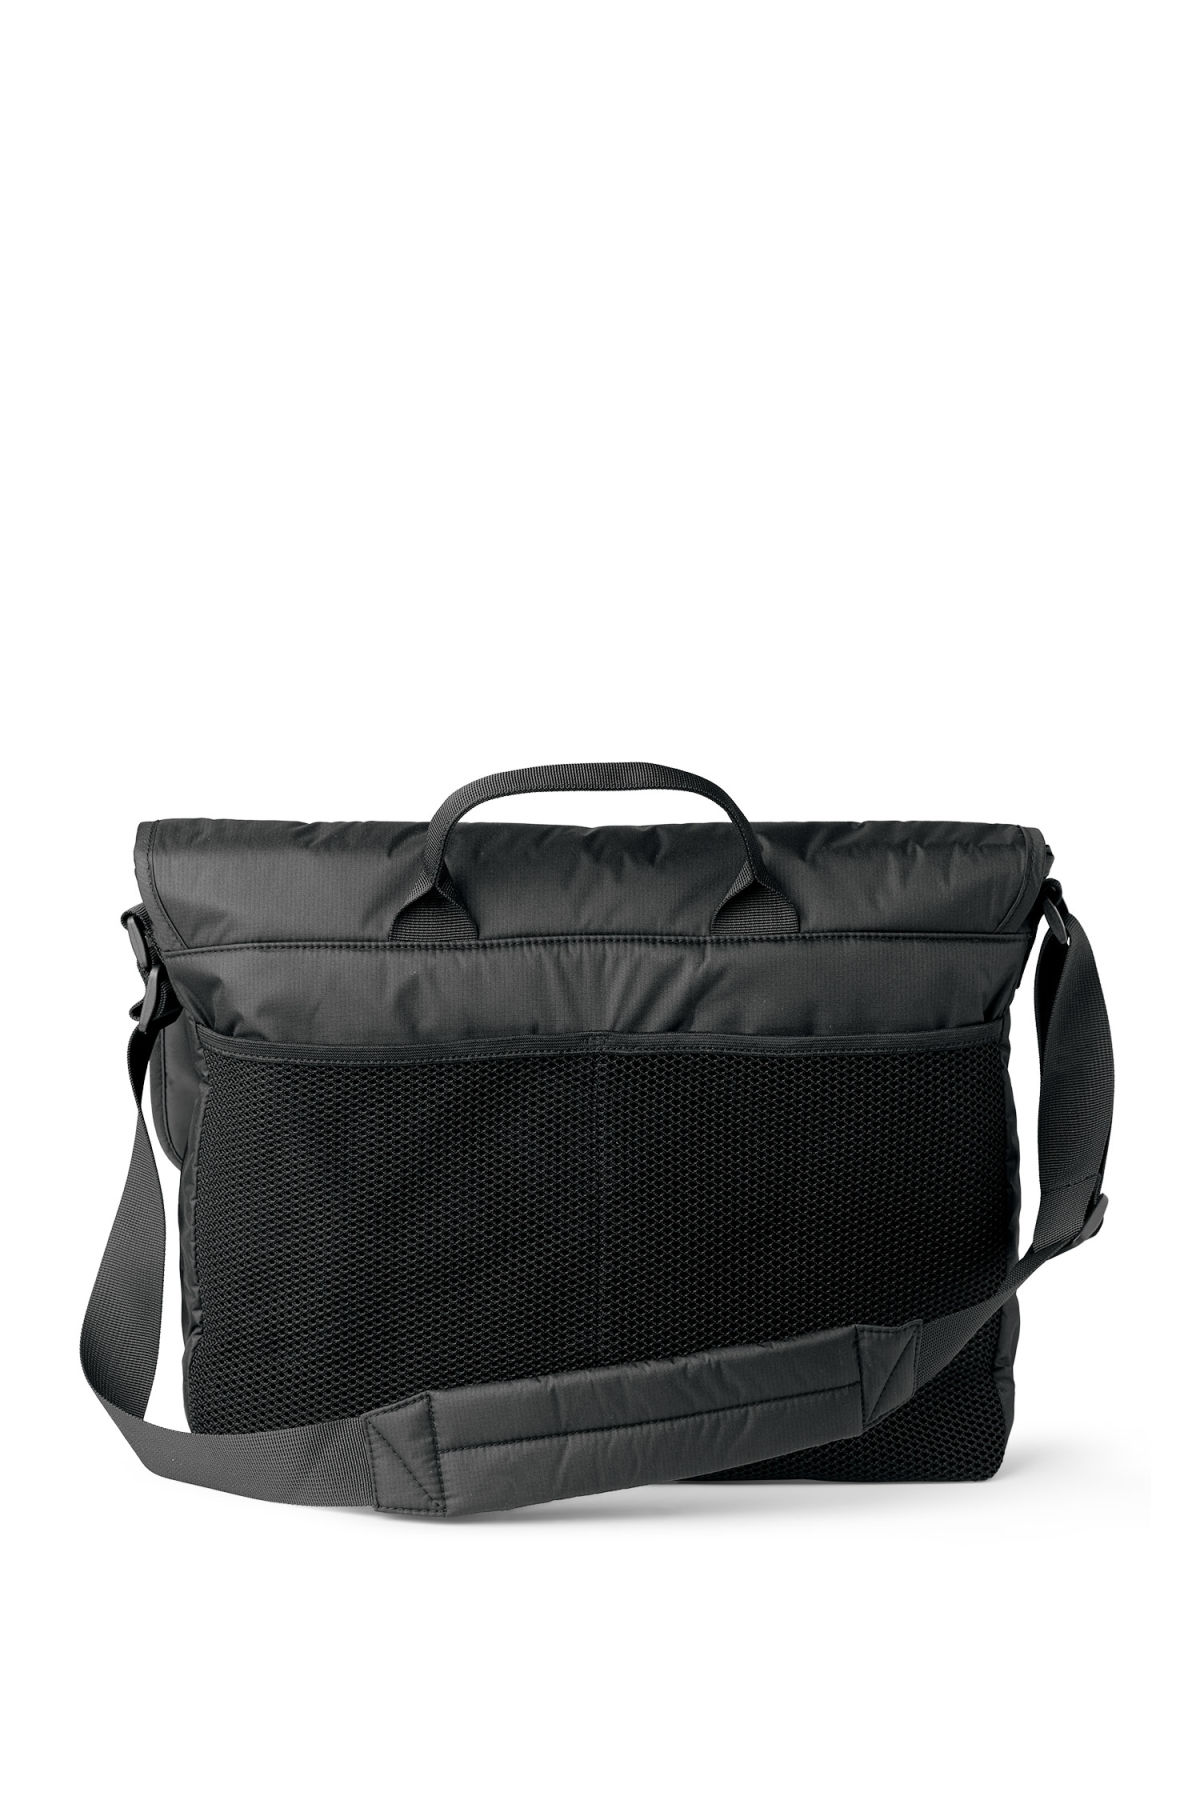 Back image of Weekday pluto messenger bag in black